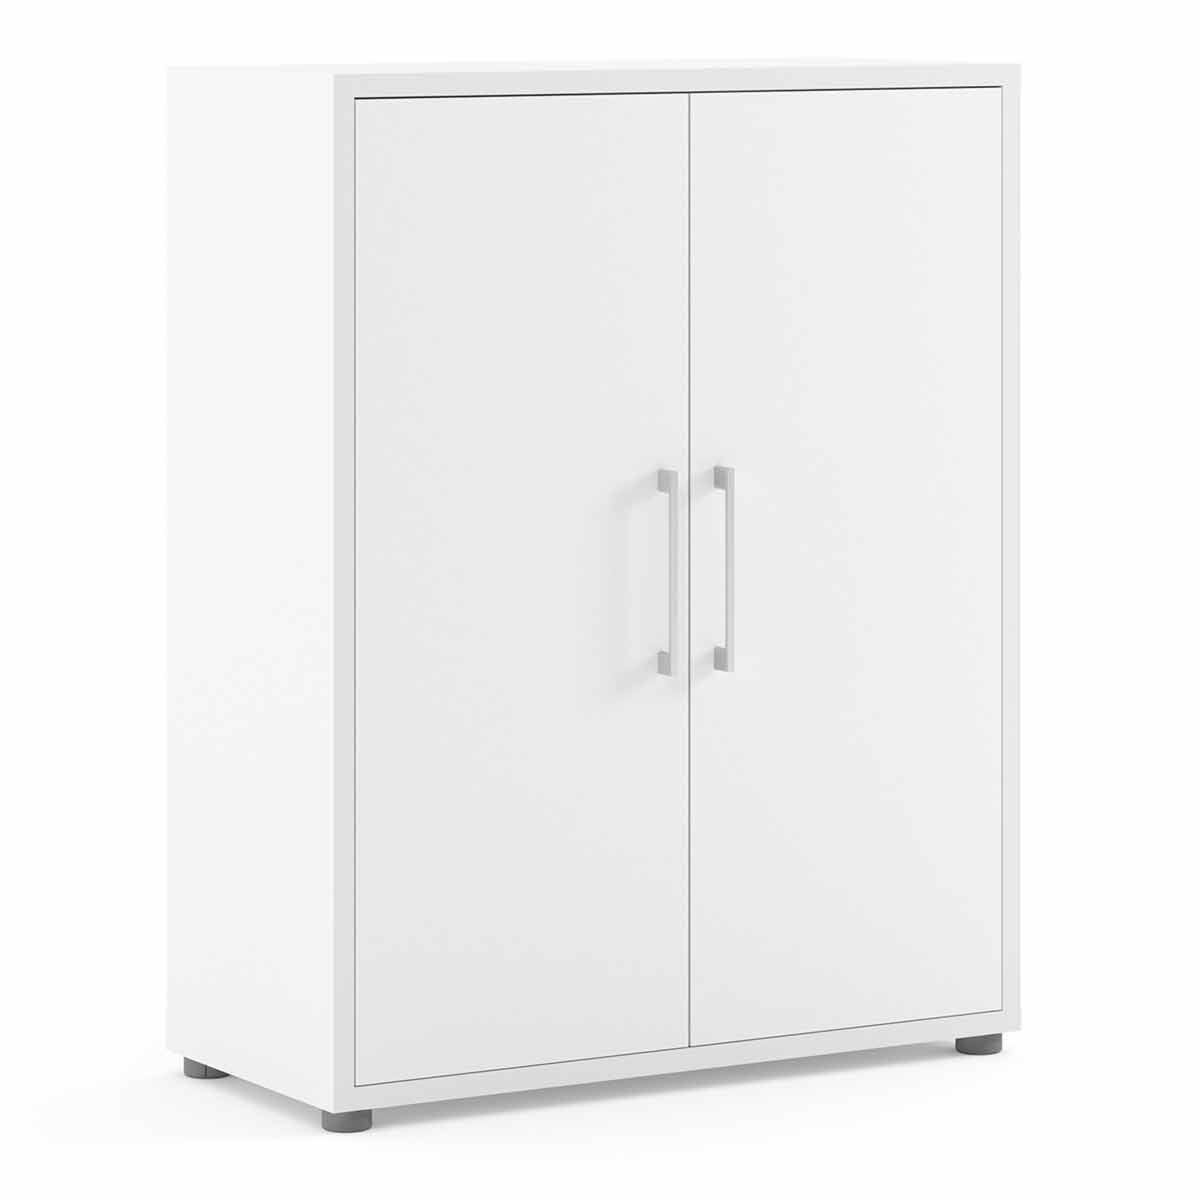 Prima Bookcase with 2 Shelves and 2 Doors White